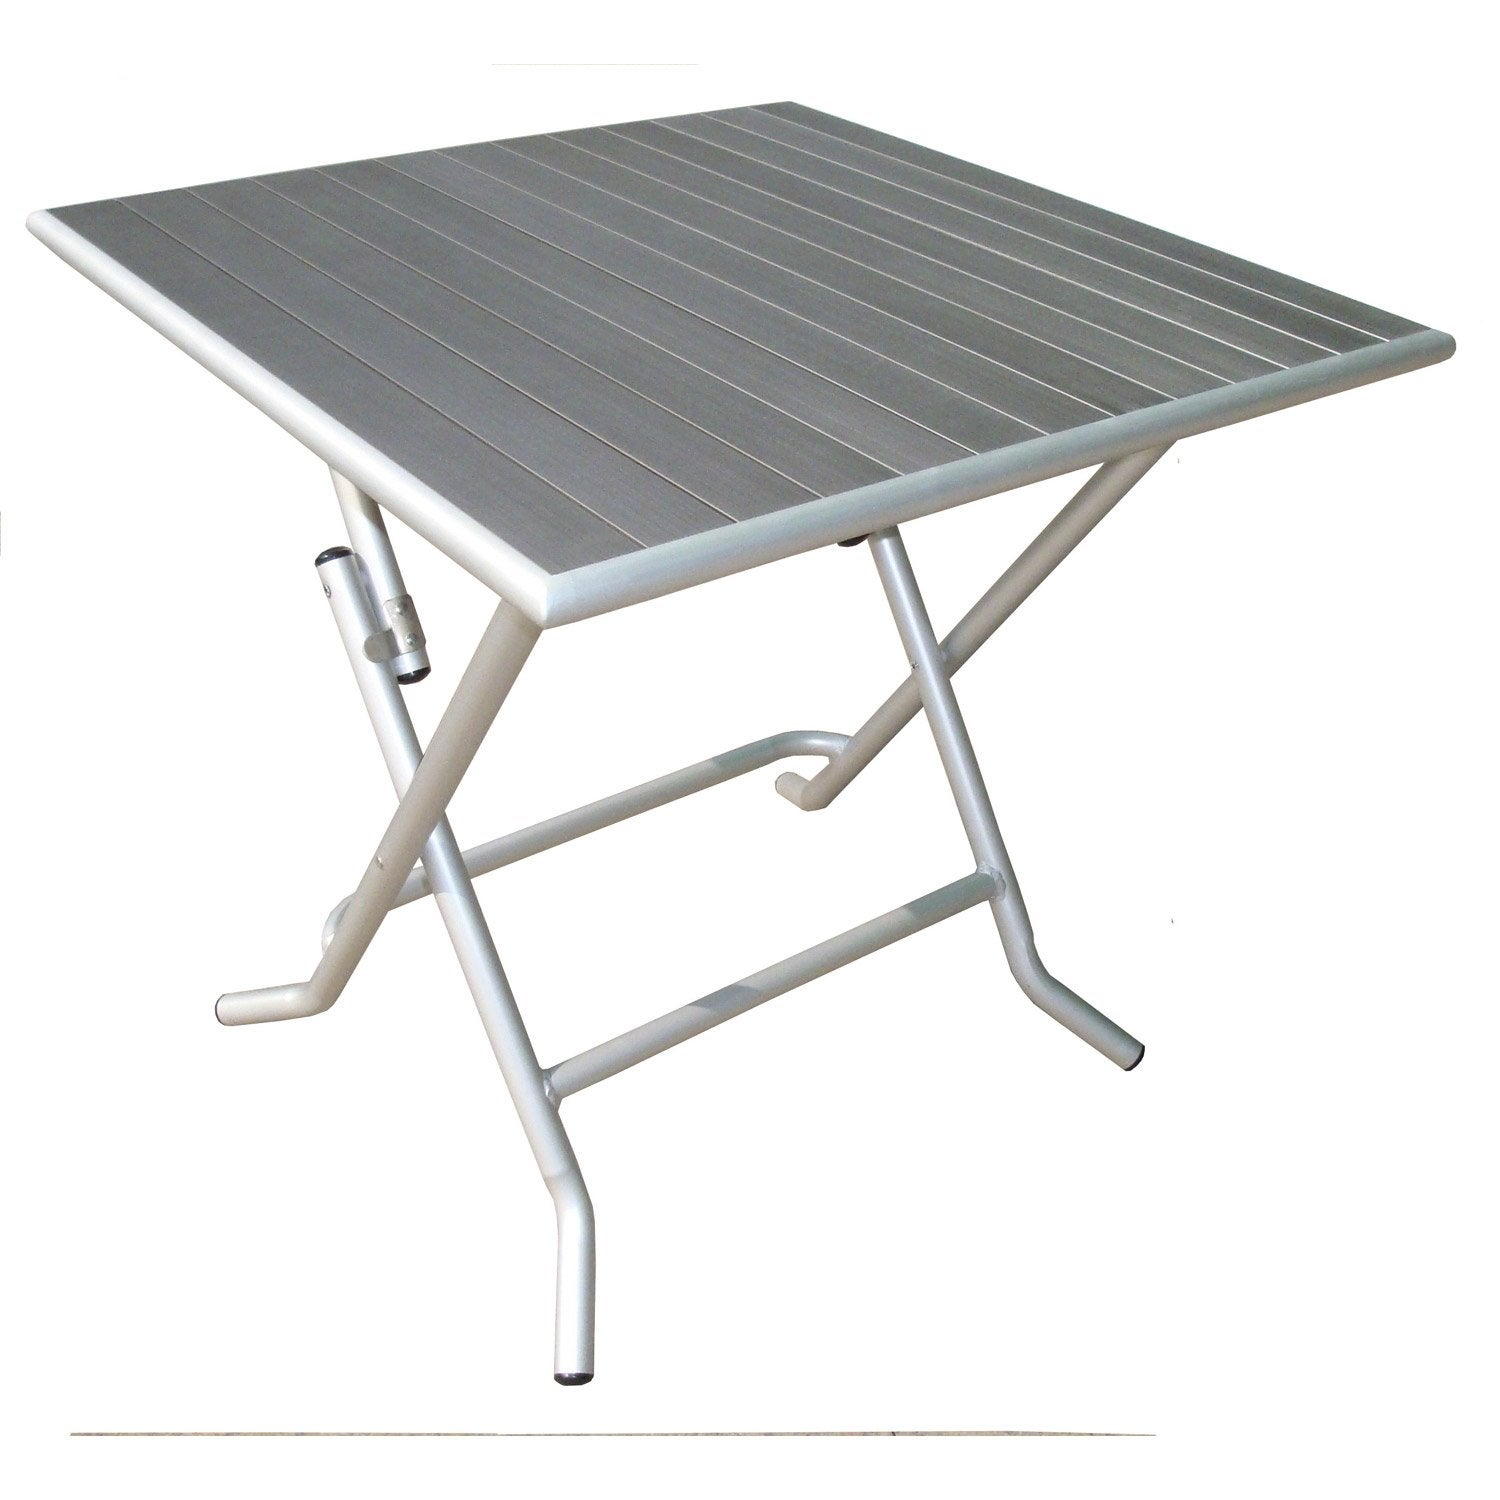 Table de jardin m tal leroy merlin for Castorama exterieur table